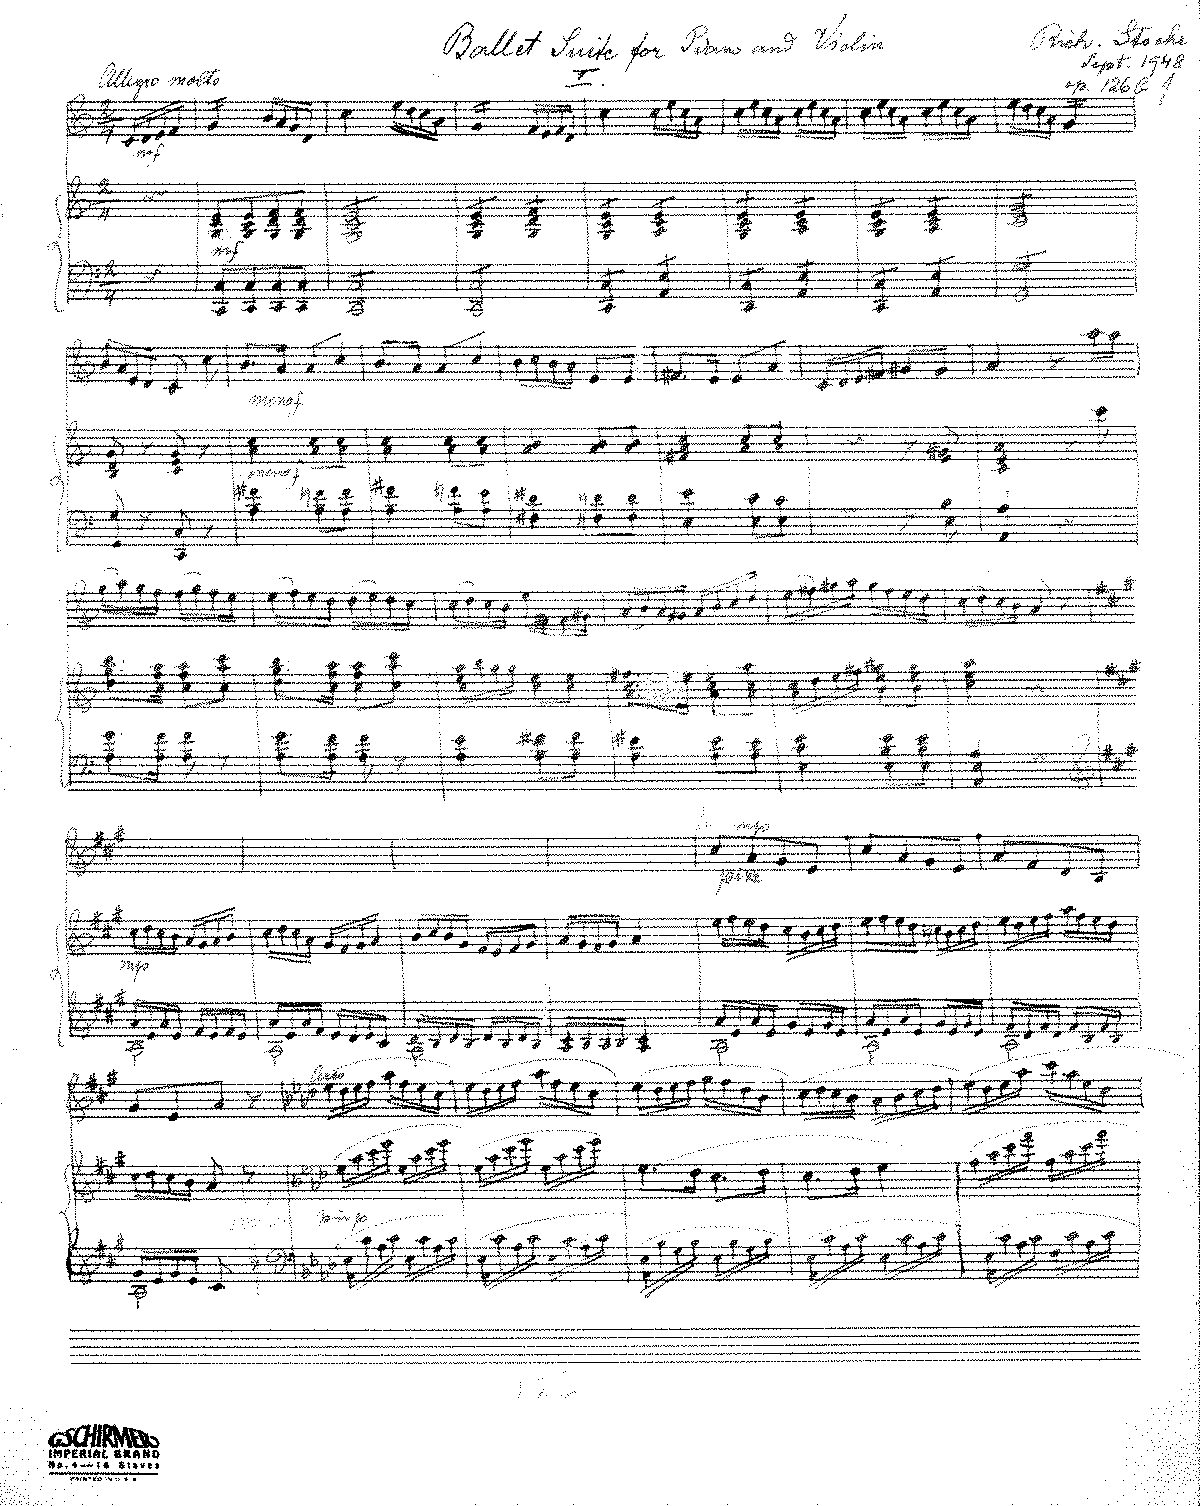 PMLP603627-Opus 126b Ballet suite for piano and violin.pdf